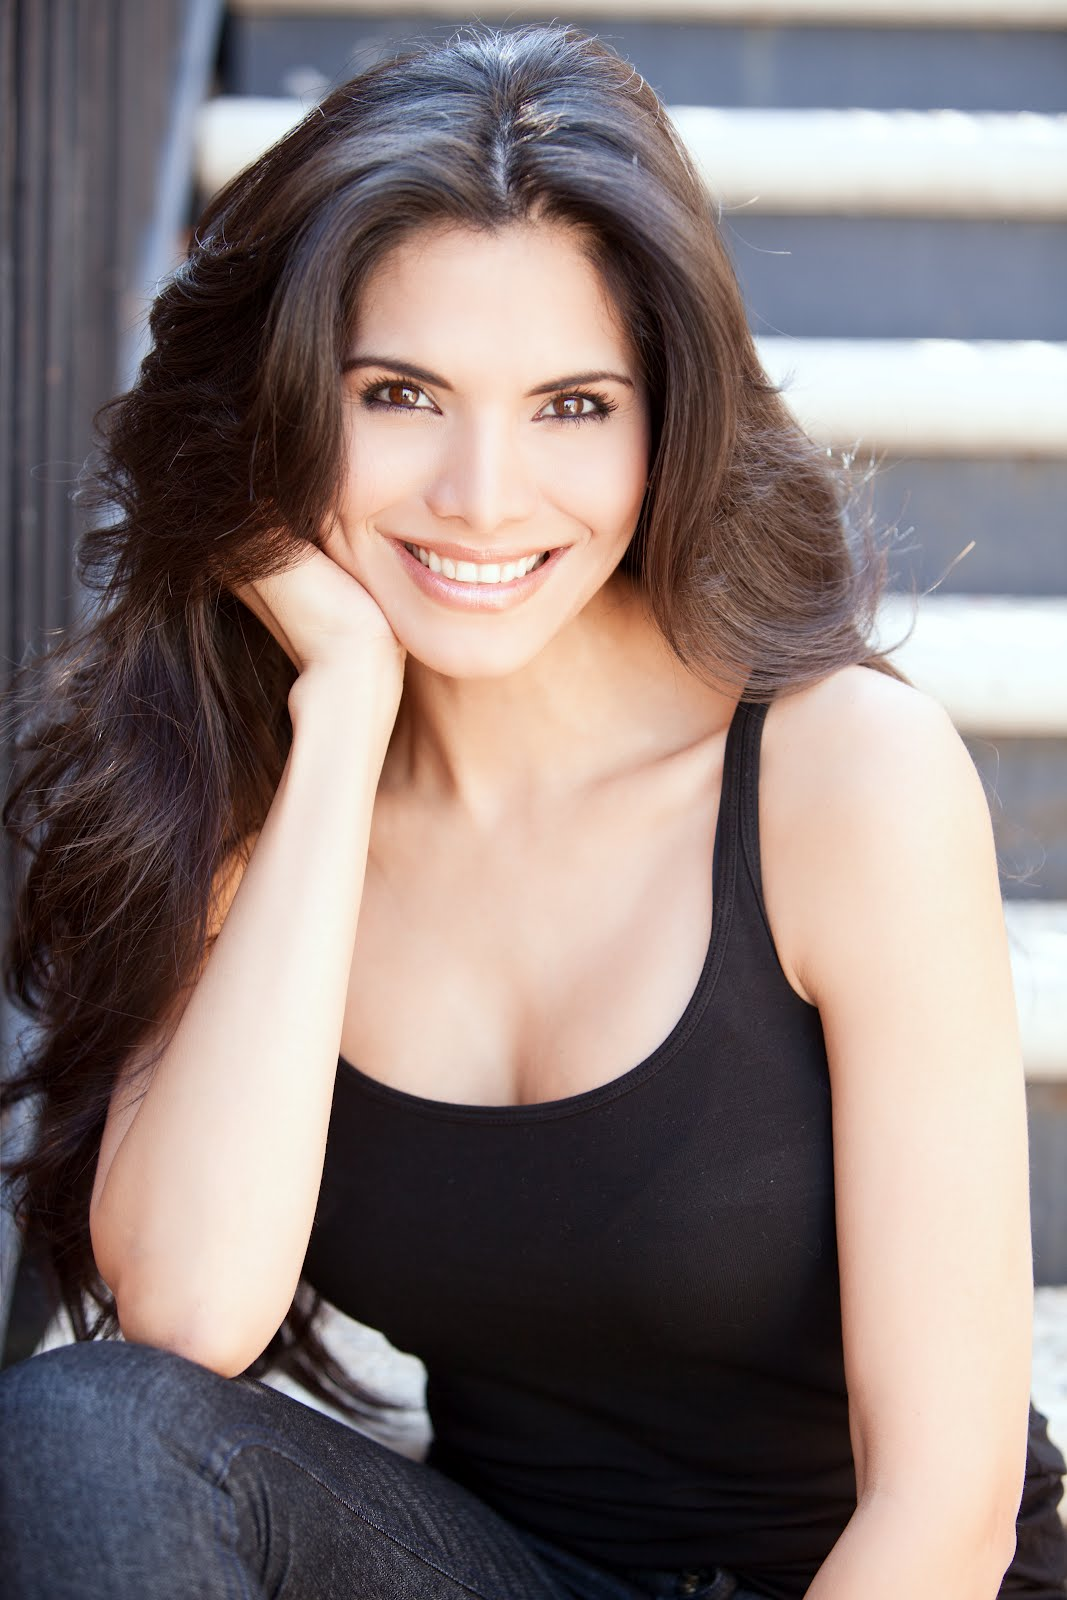 joyce-giraud-porn-little-eskimo-girls